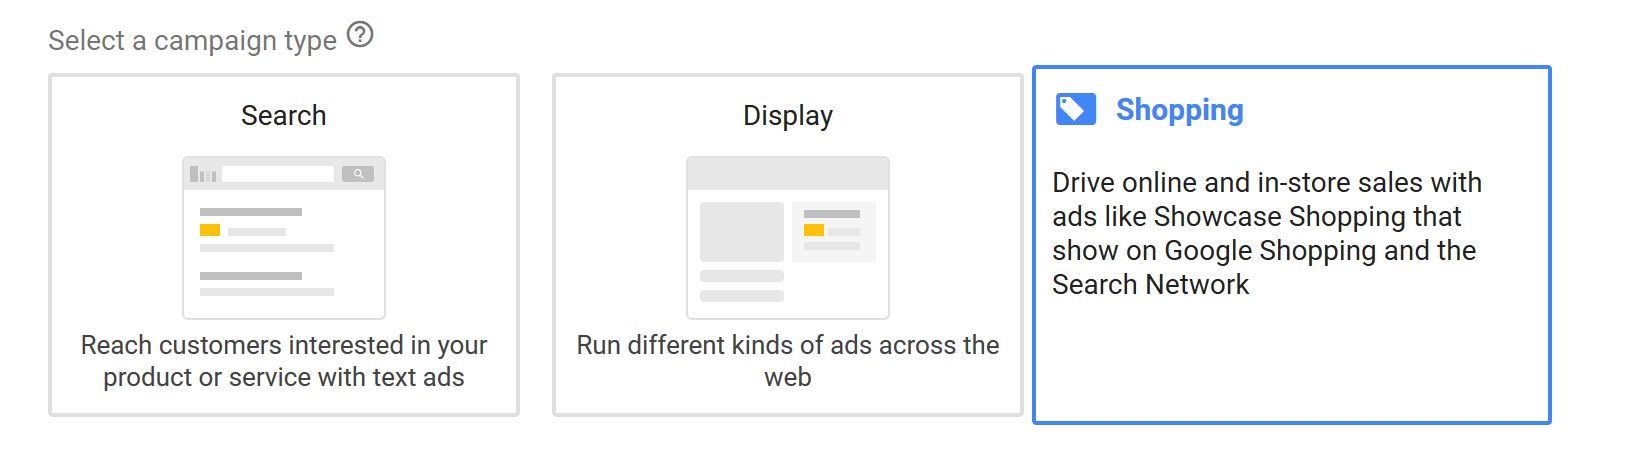 Create Google Shopping Ad Campaign Step 2